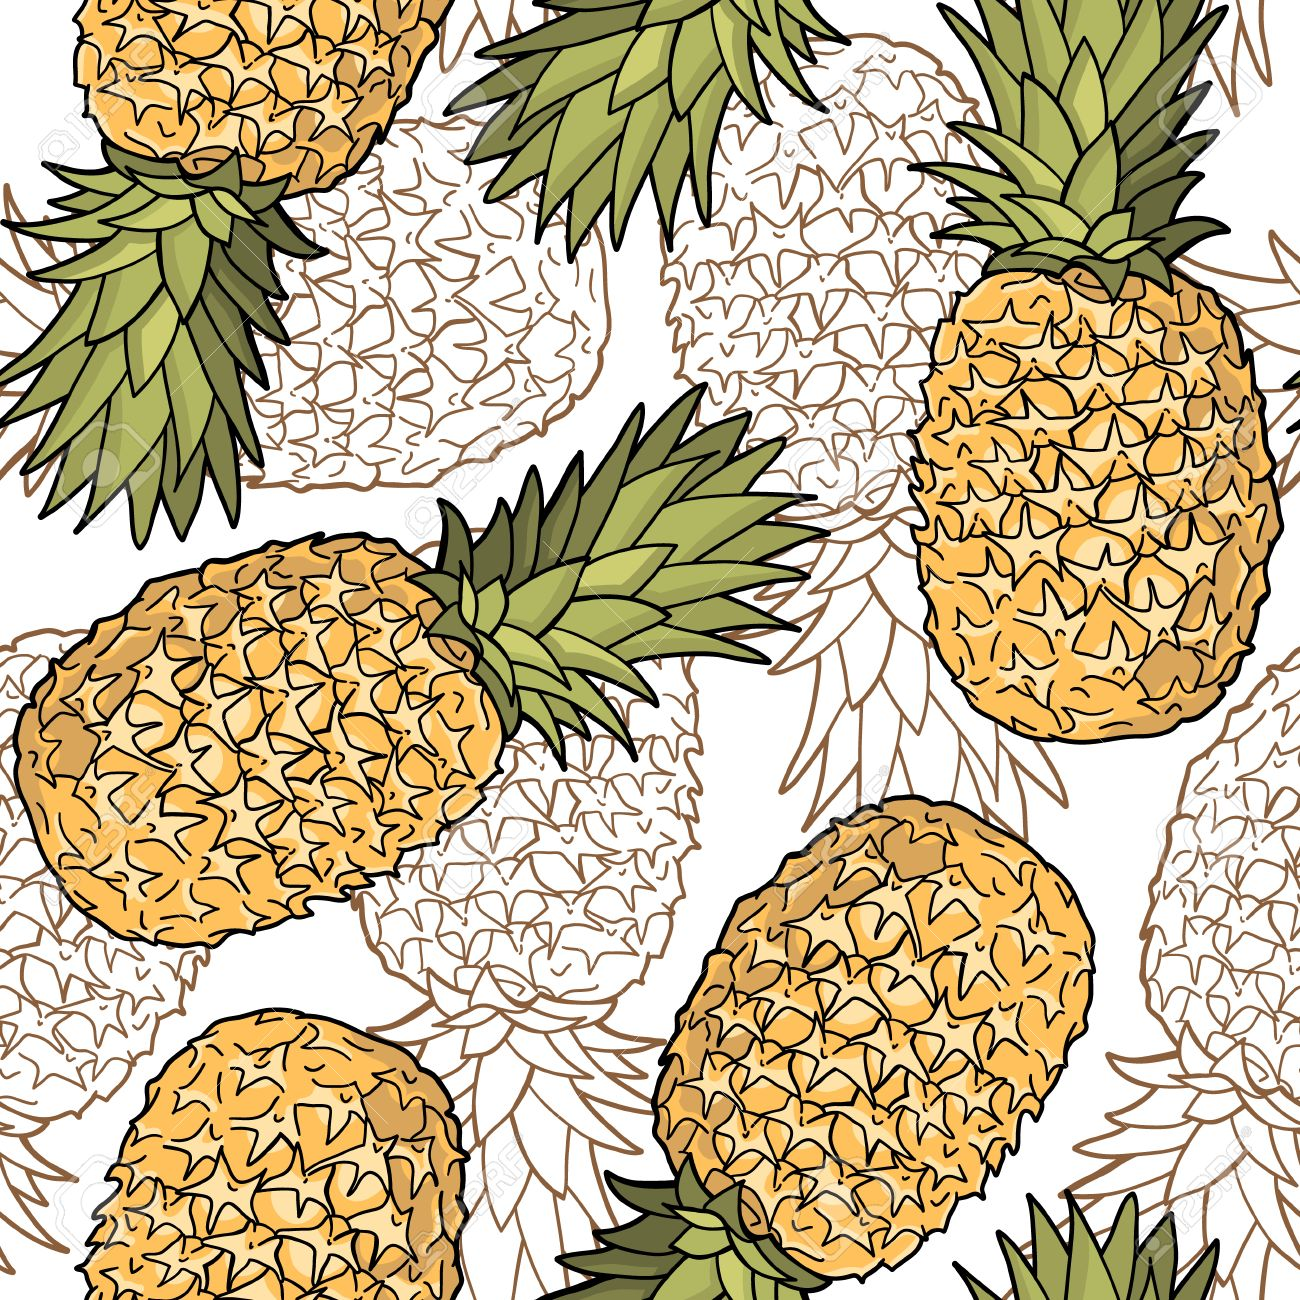 Seamless pattern with pineapples Graphic stylized drawing Vector illustration - 28926732